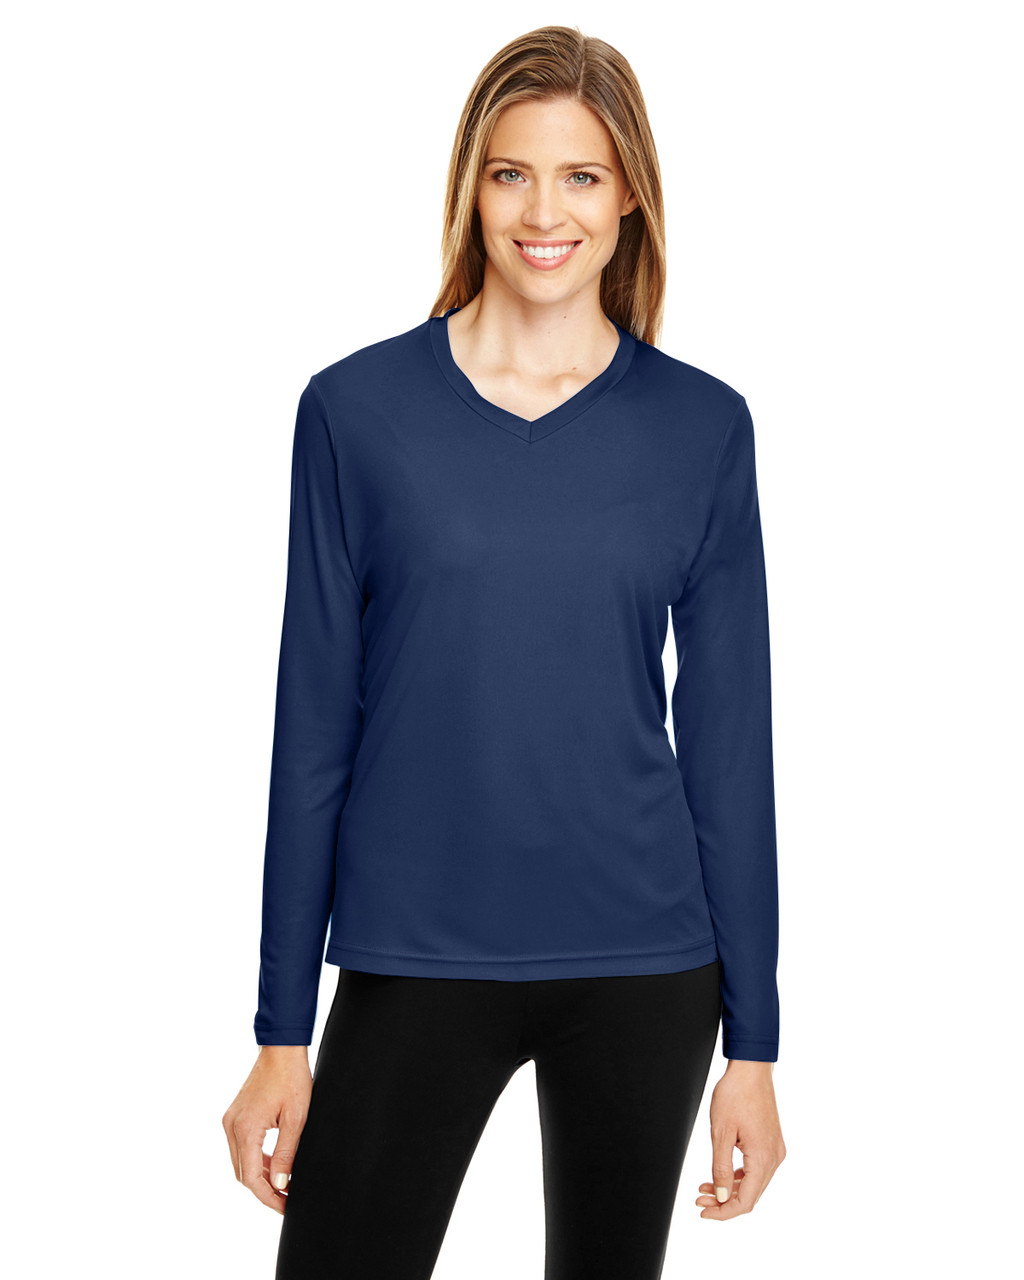 Sport Dark Navy - TT11WL Team 365 Ladies' Zone Performance Long-Sleeve T-Shirt